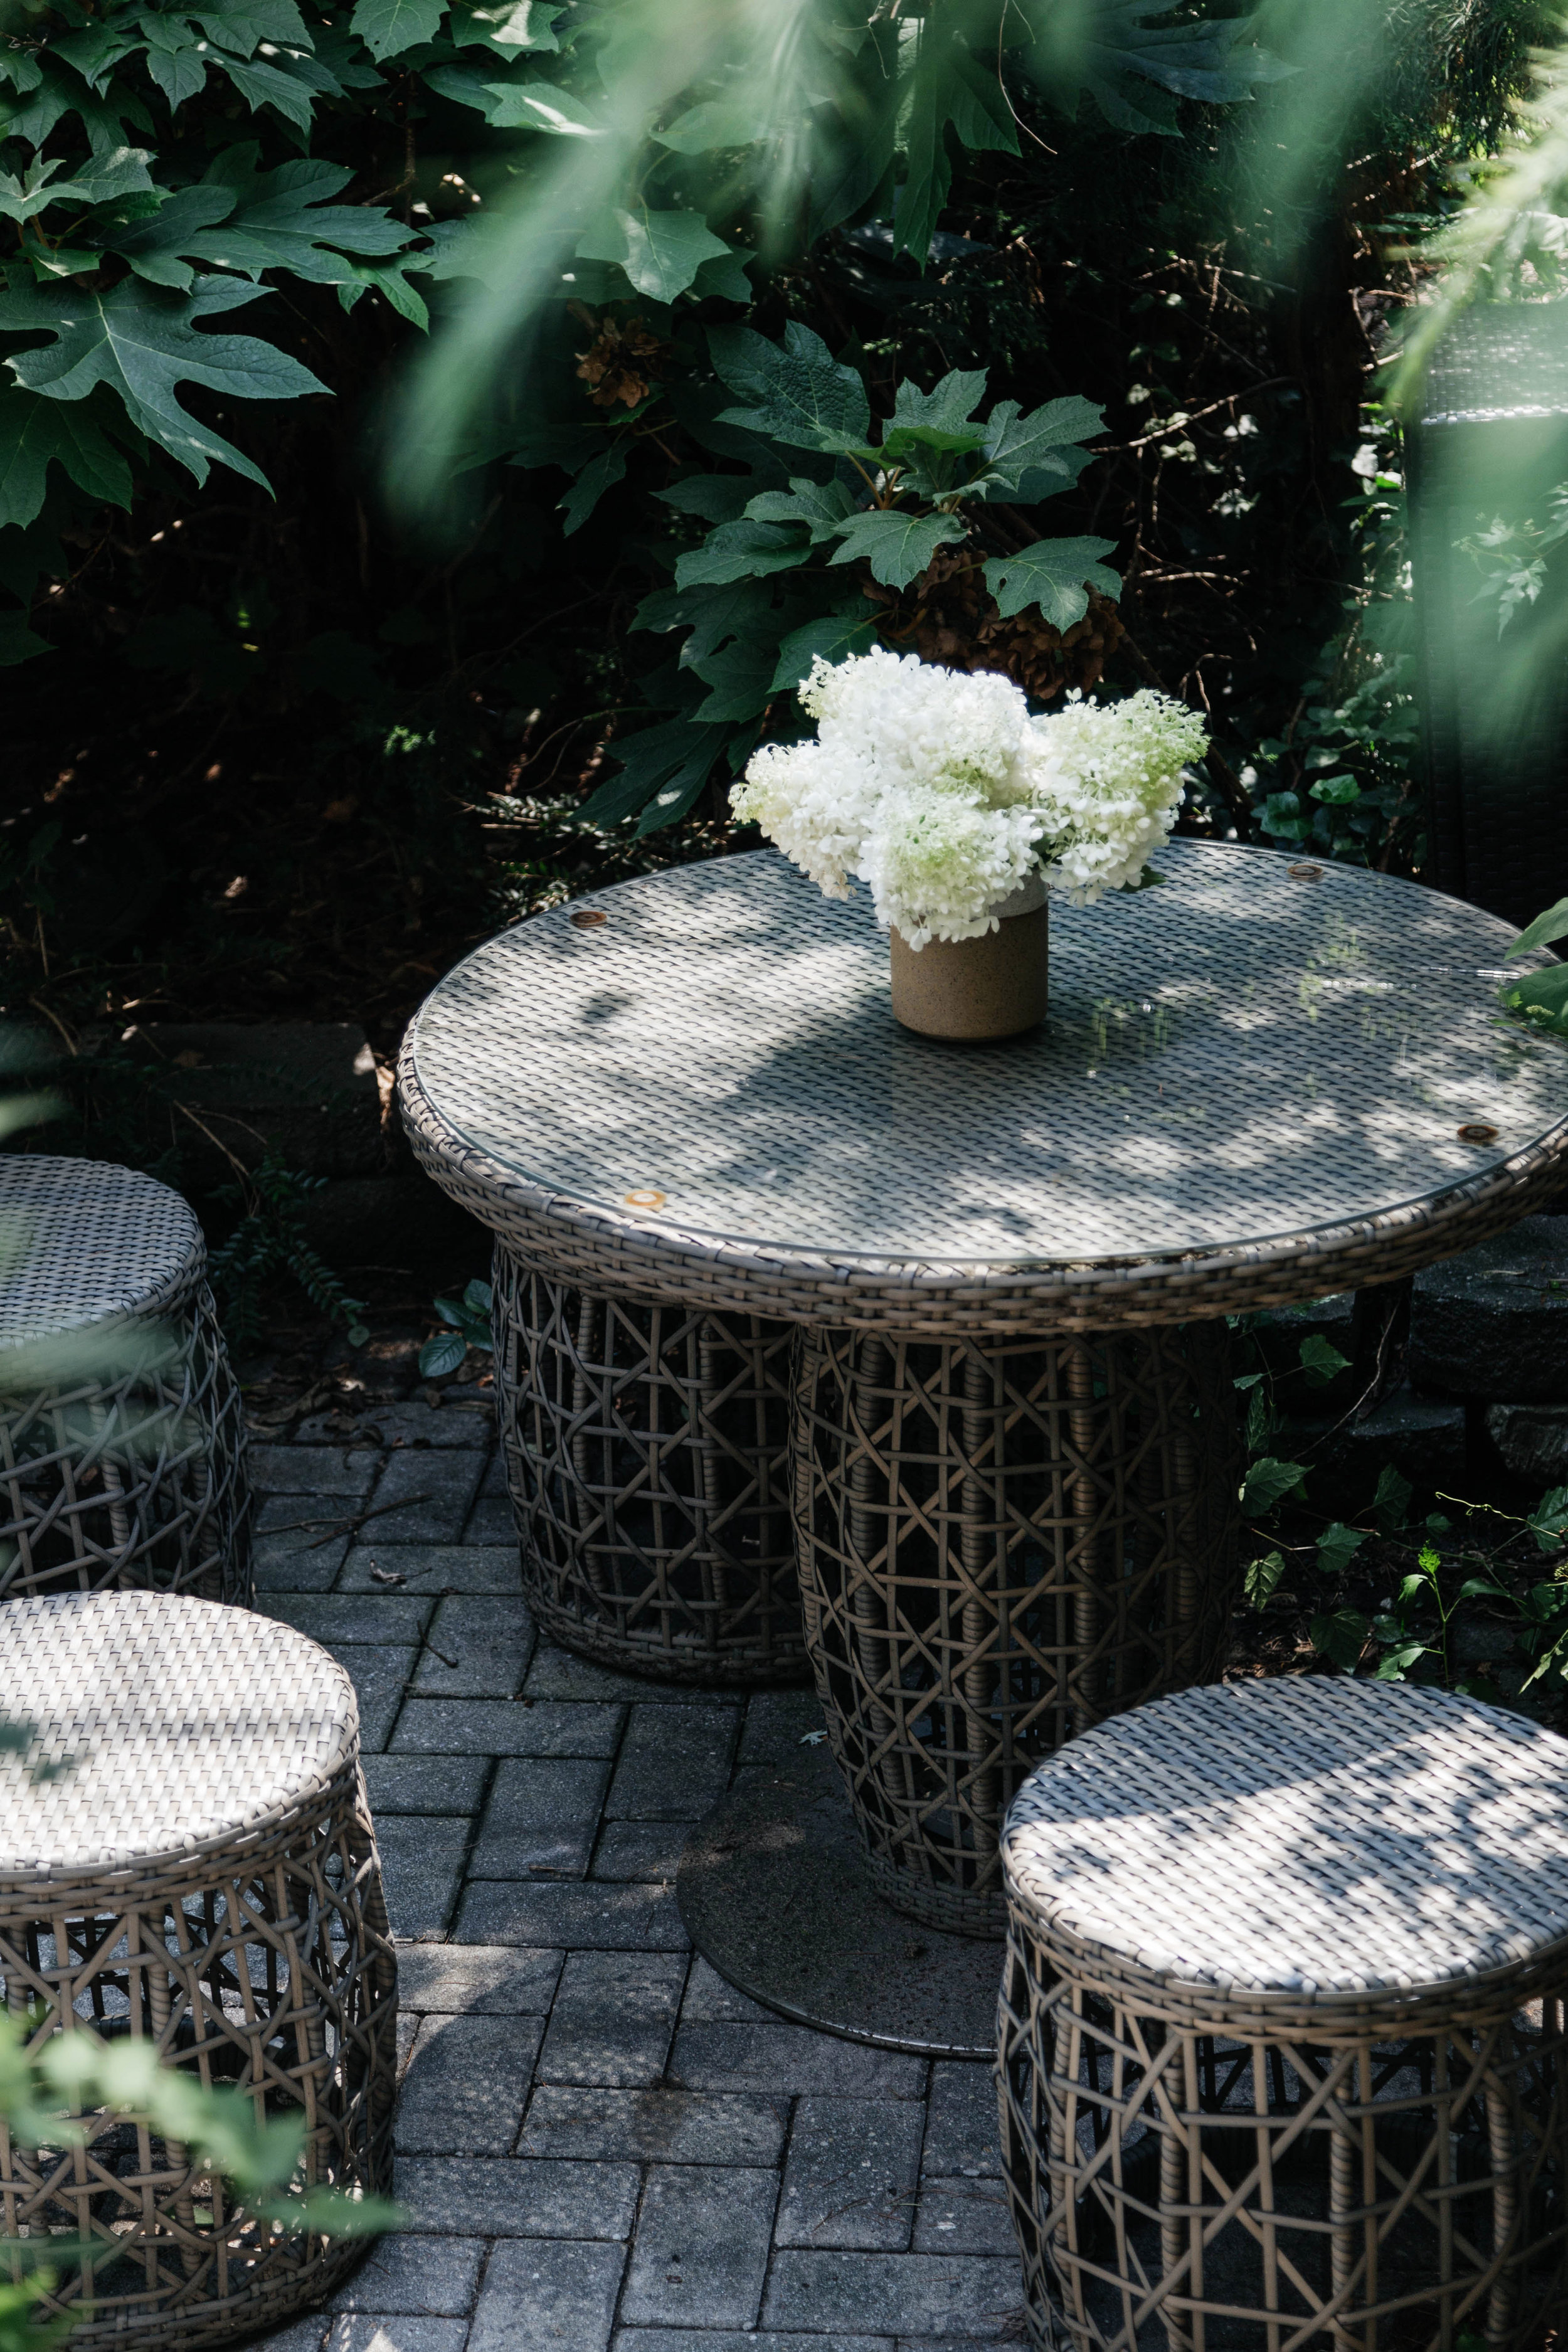 Outdoor area with round stools